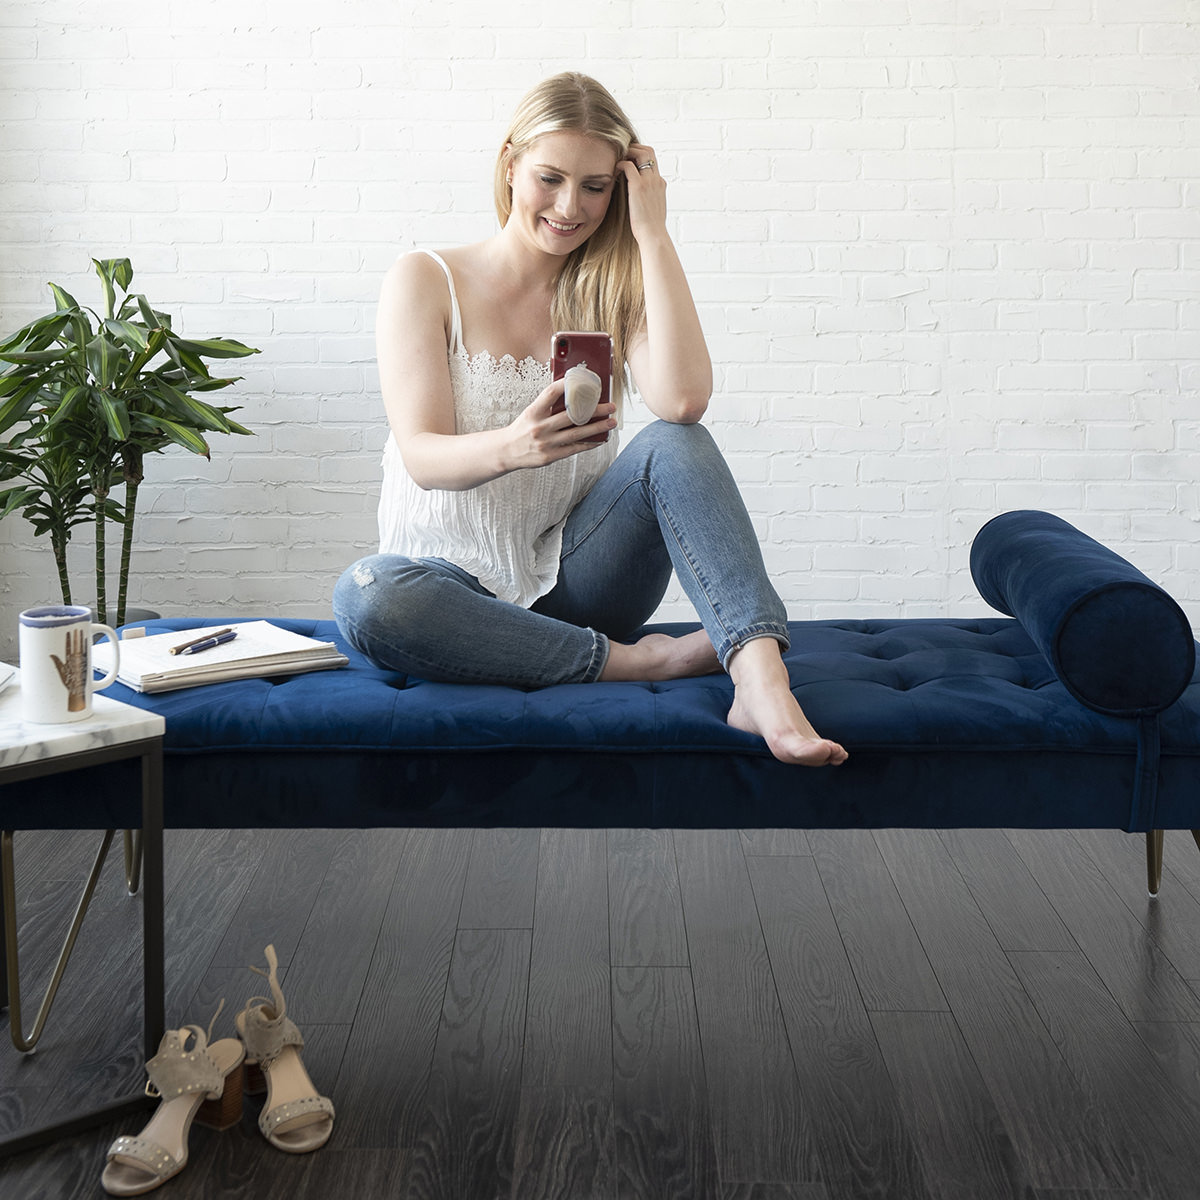 woman sitting on couch looking at her phone